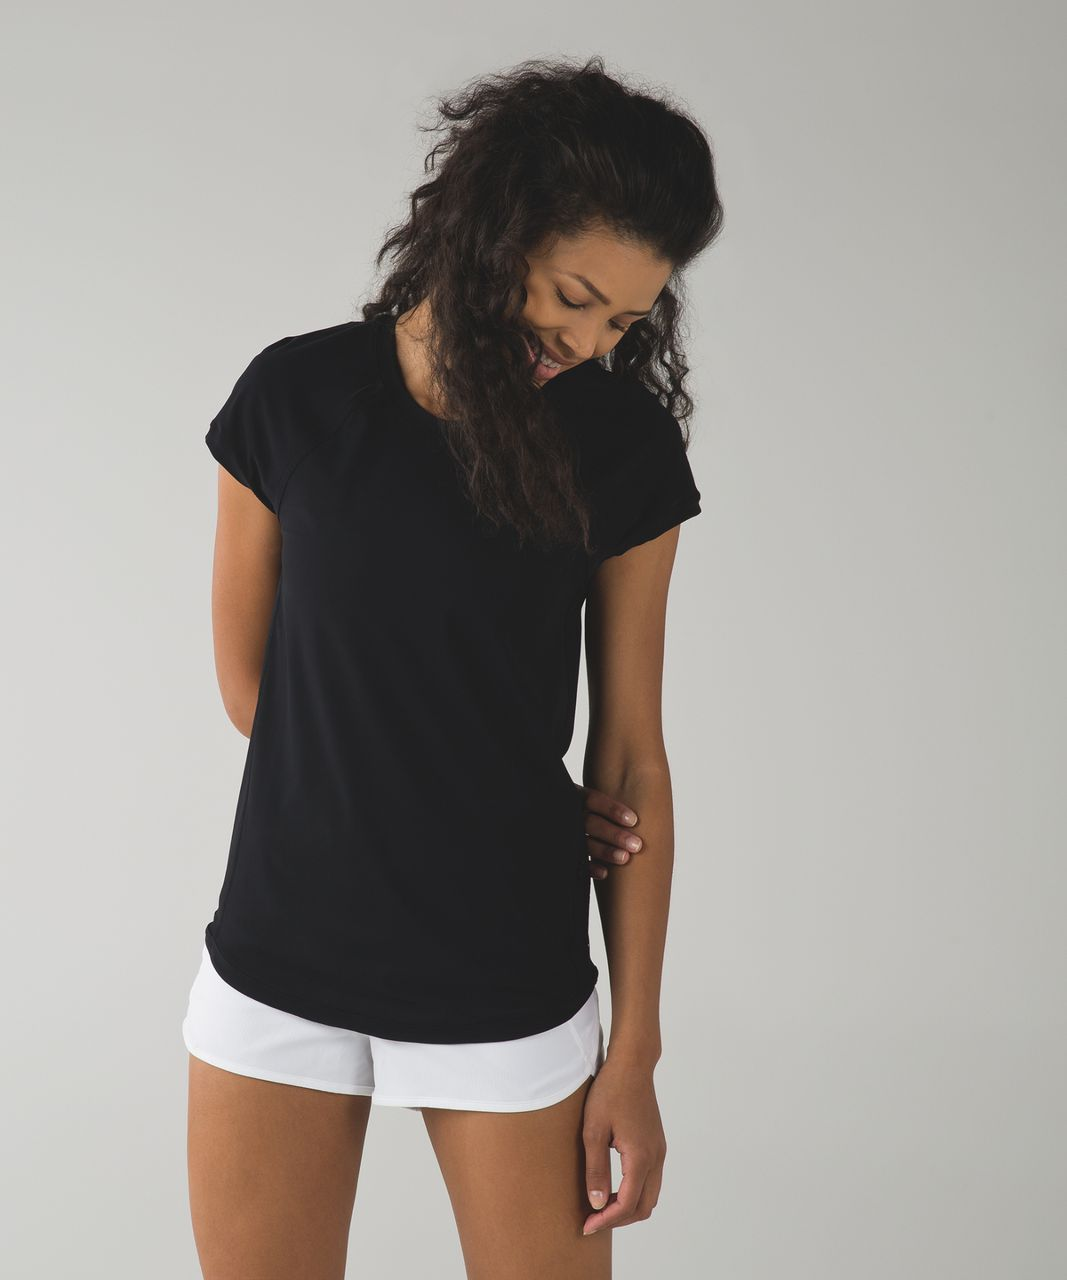 Lululemon Vent It Tee - Black